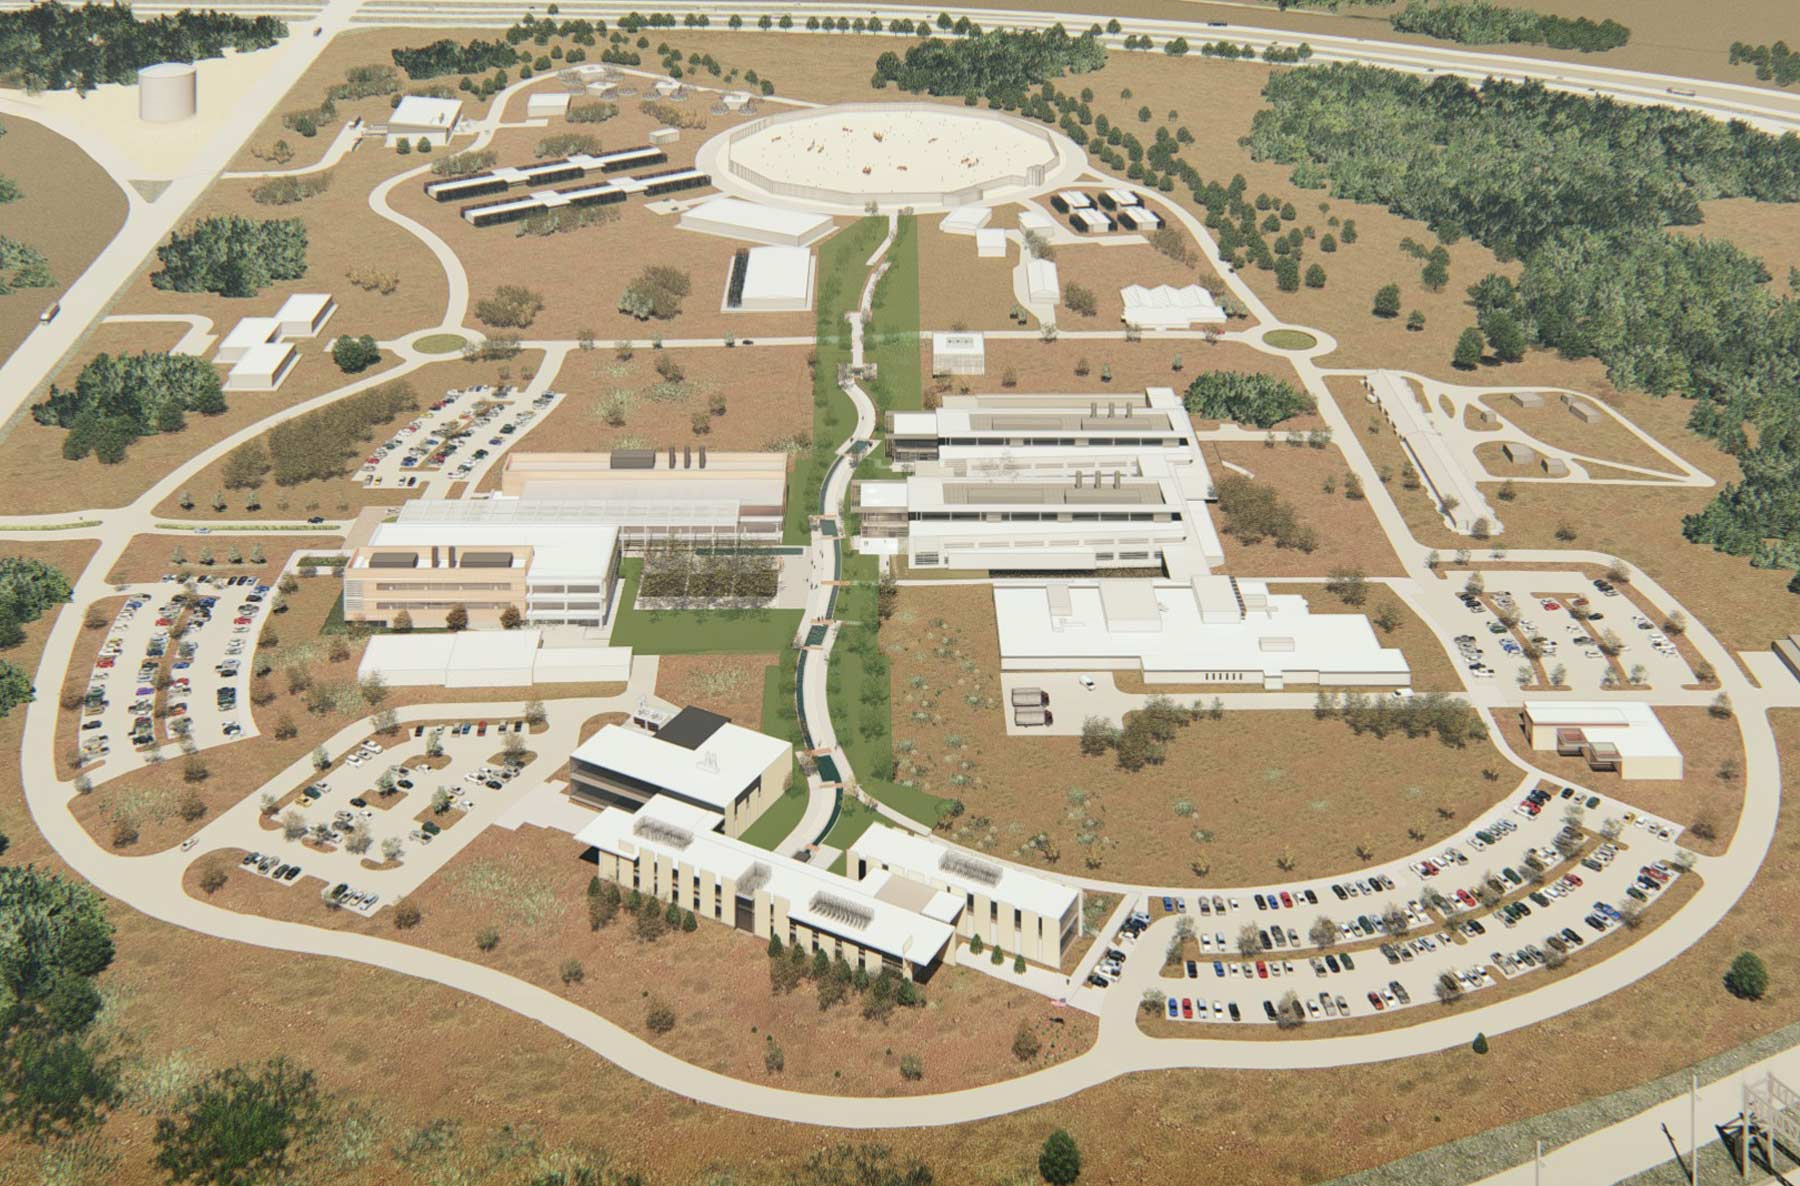 Confidential Client - Campus Master Plan